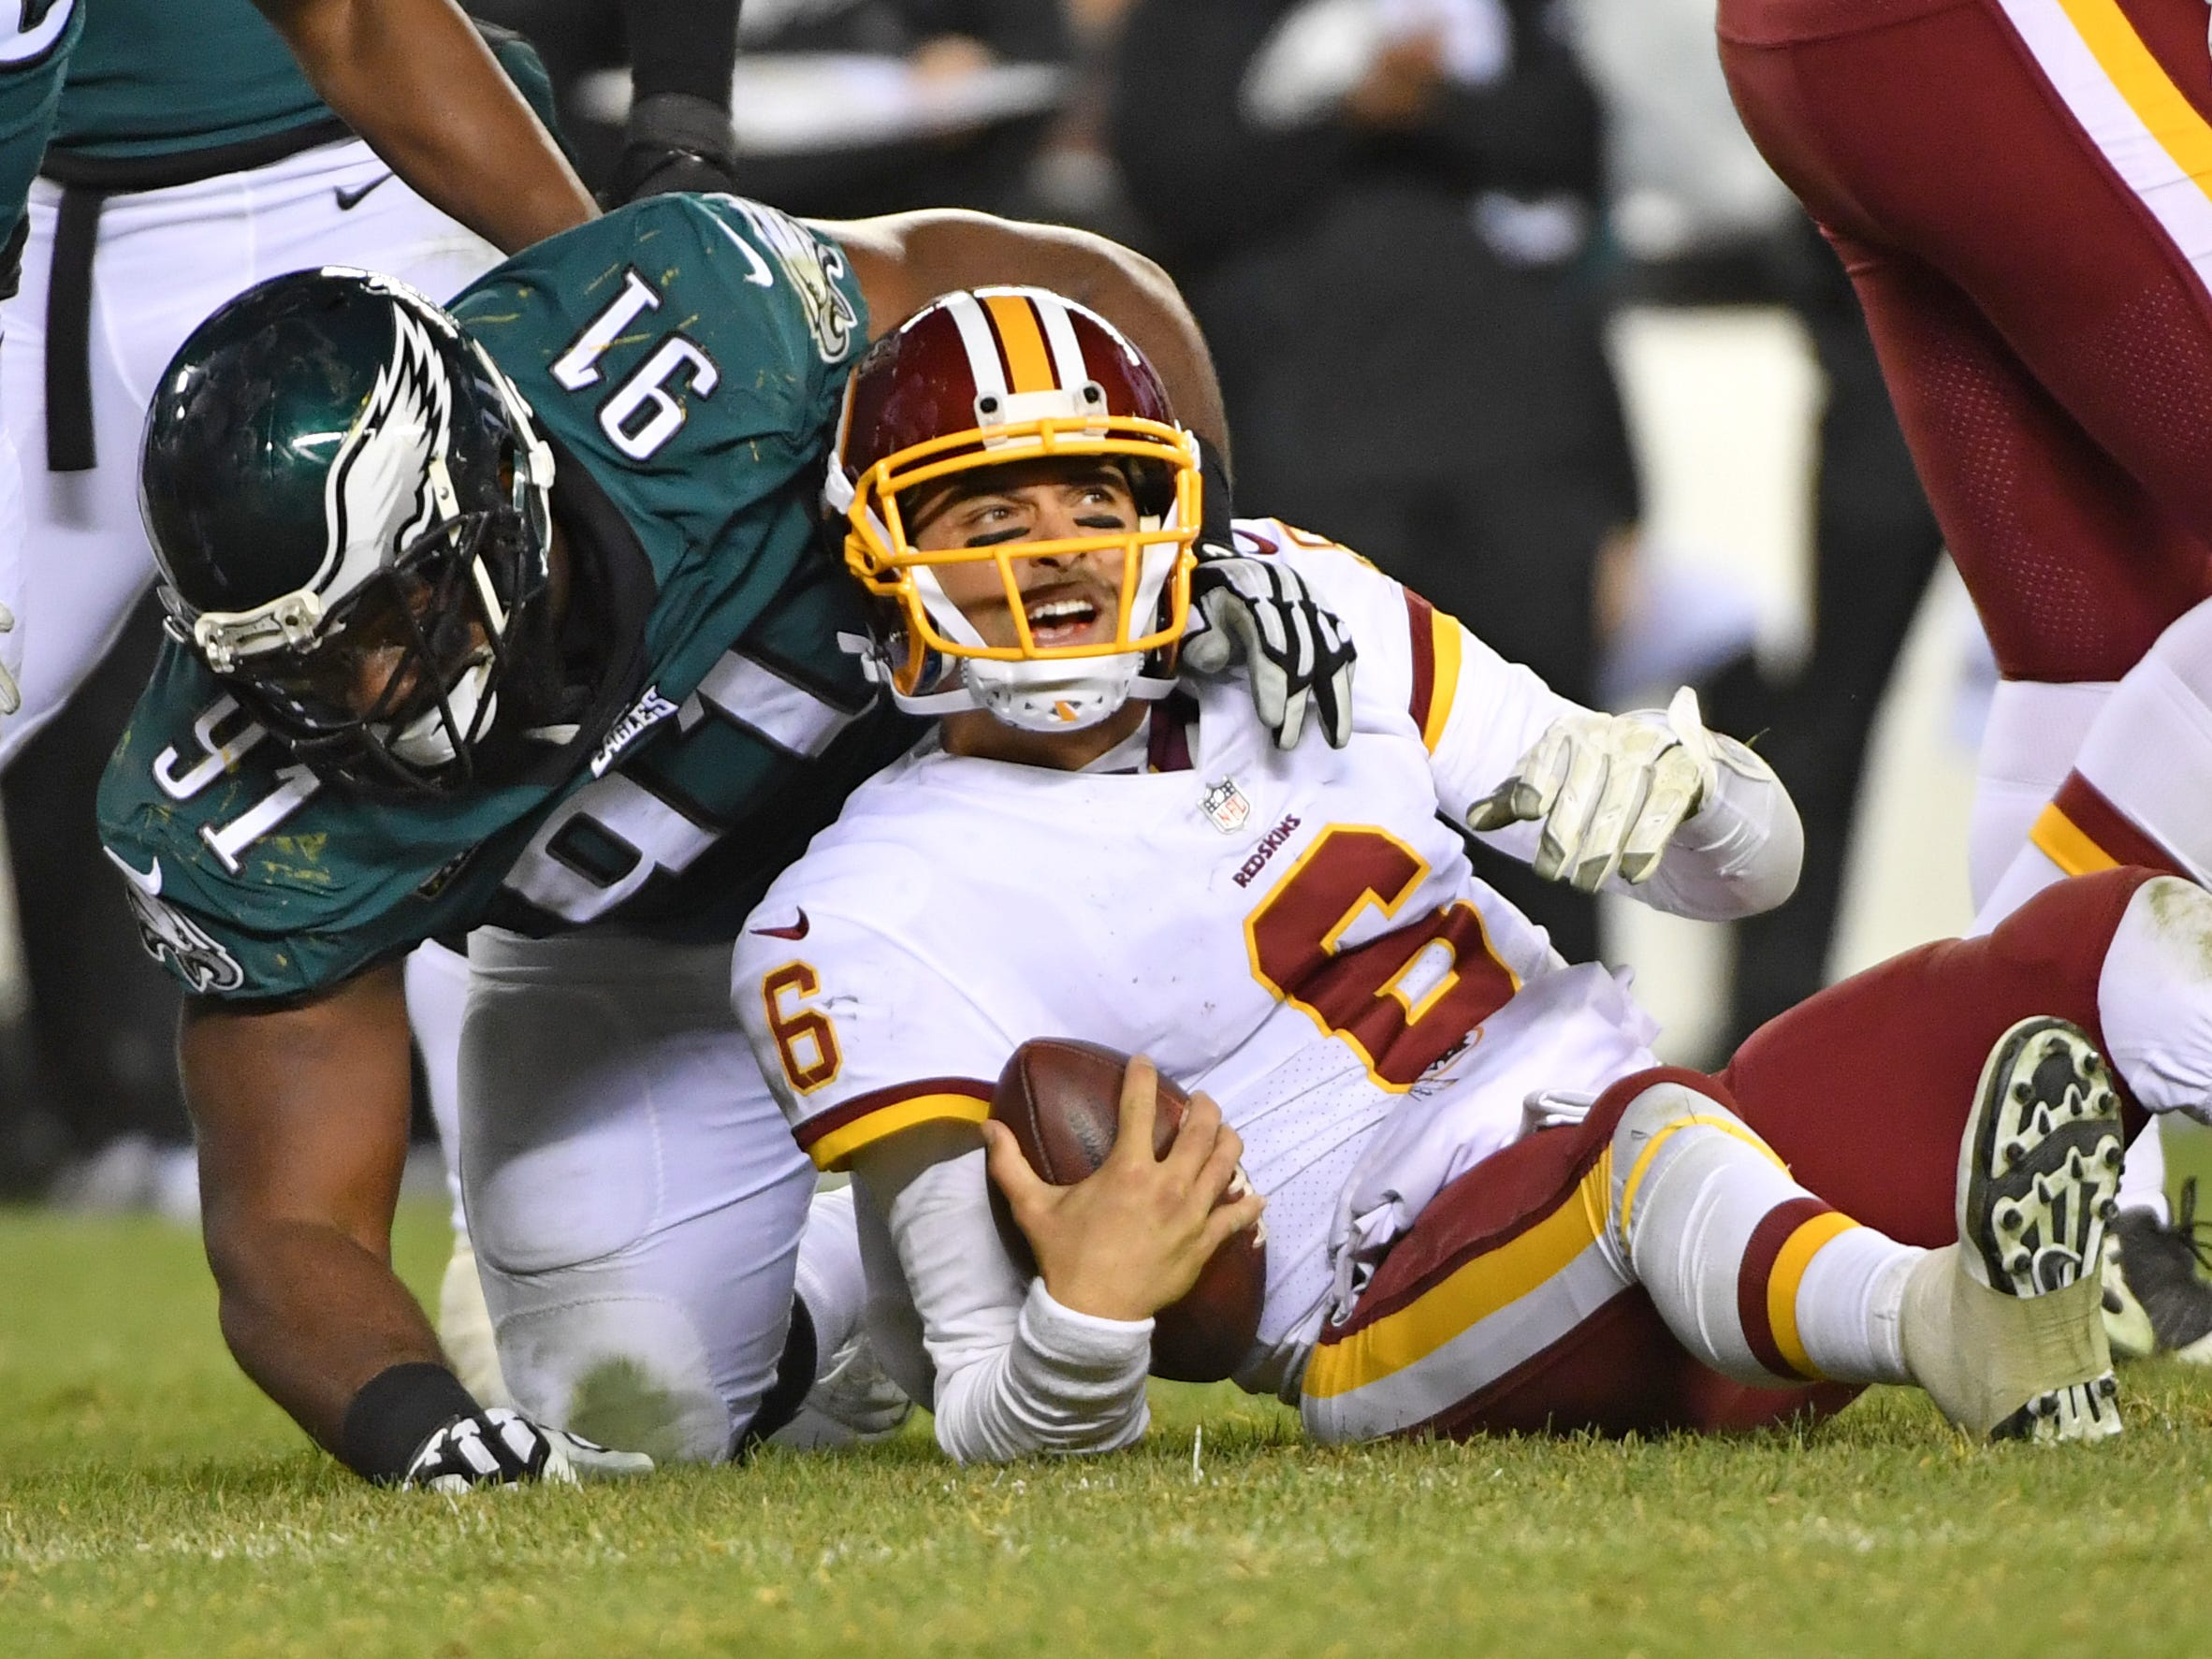 Philadelphia Eagles defensive tackle Fletcher Cox (91) sacks Washington Redskins quarterback Mark Sanchez (6) during the fourth quarter at Lincoln Financial Field.